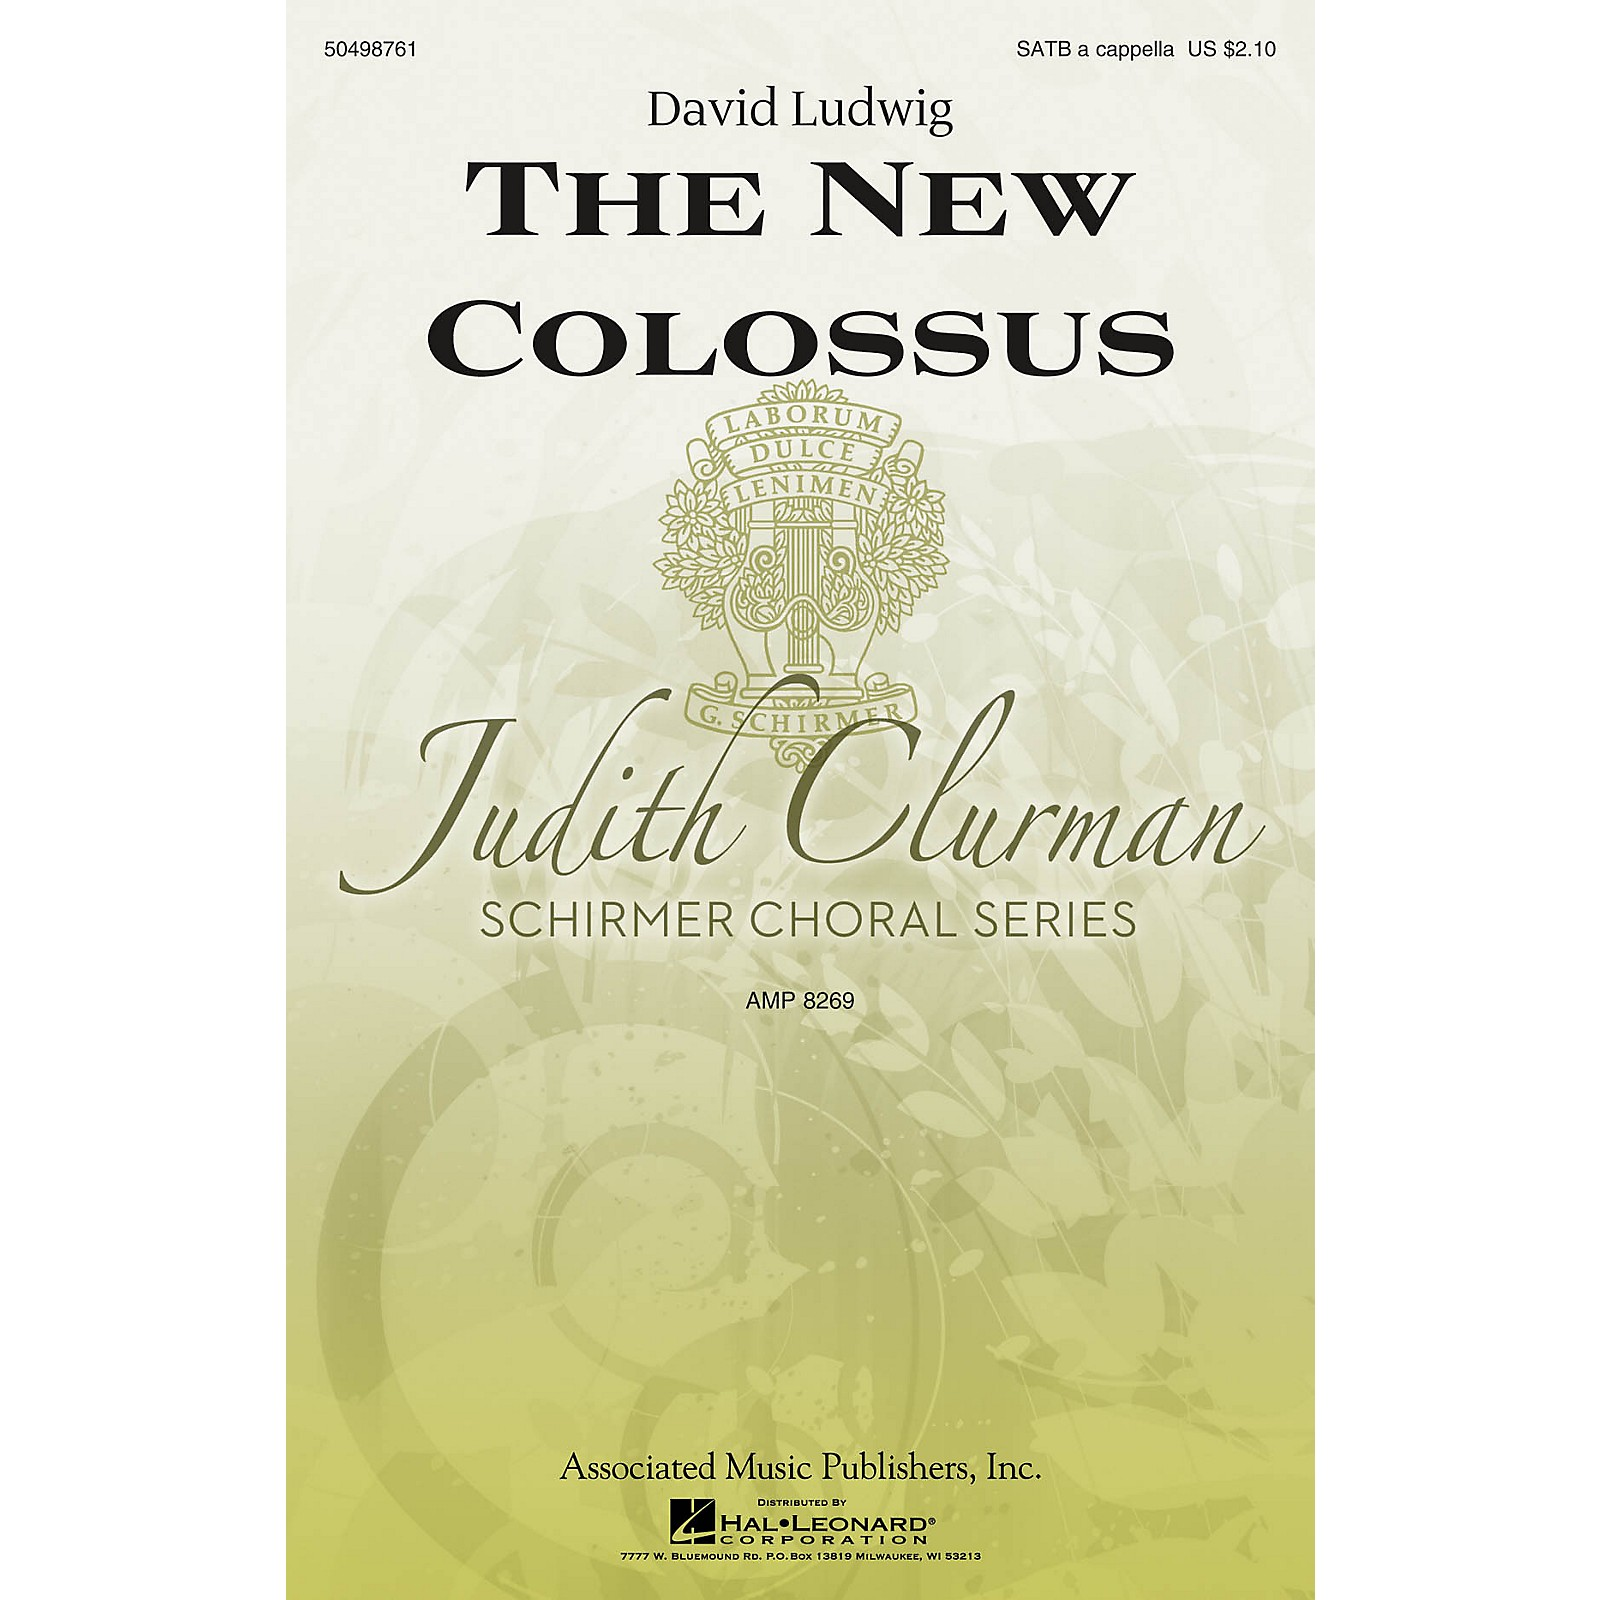 G. Schirmer The New Colossus (Judith Clurman Choral Series) SATB a cappella composed by David Ludwig